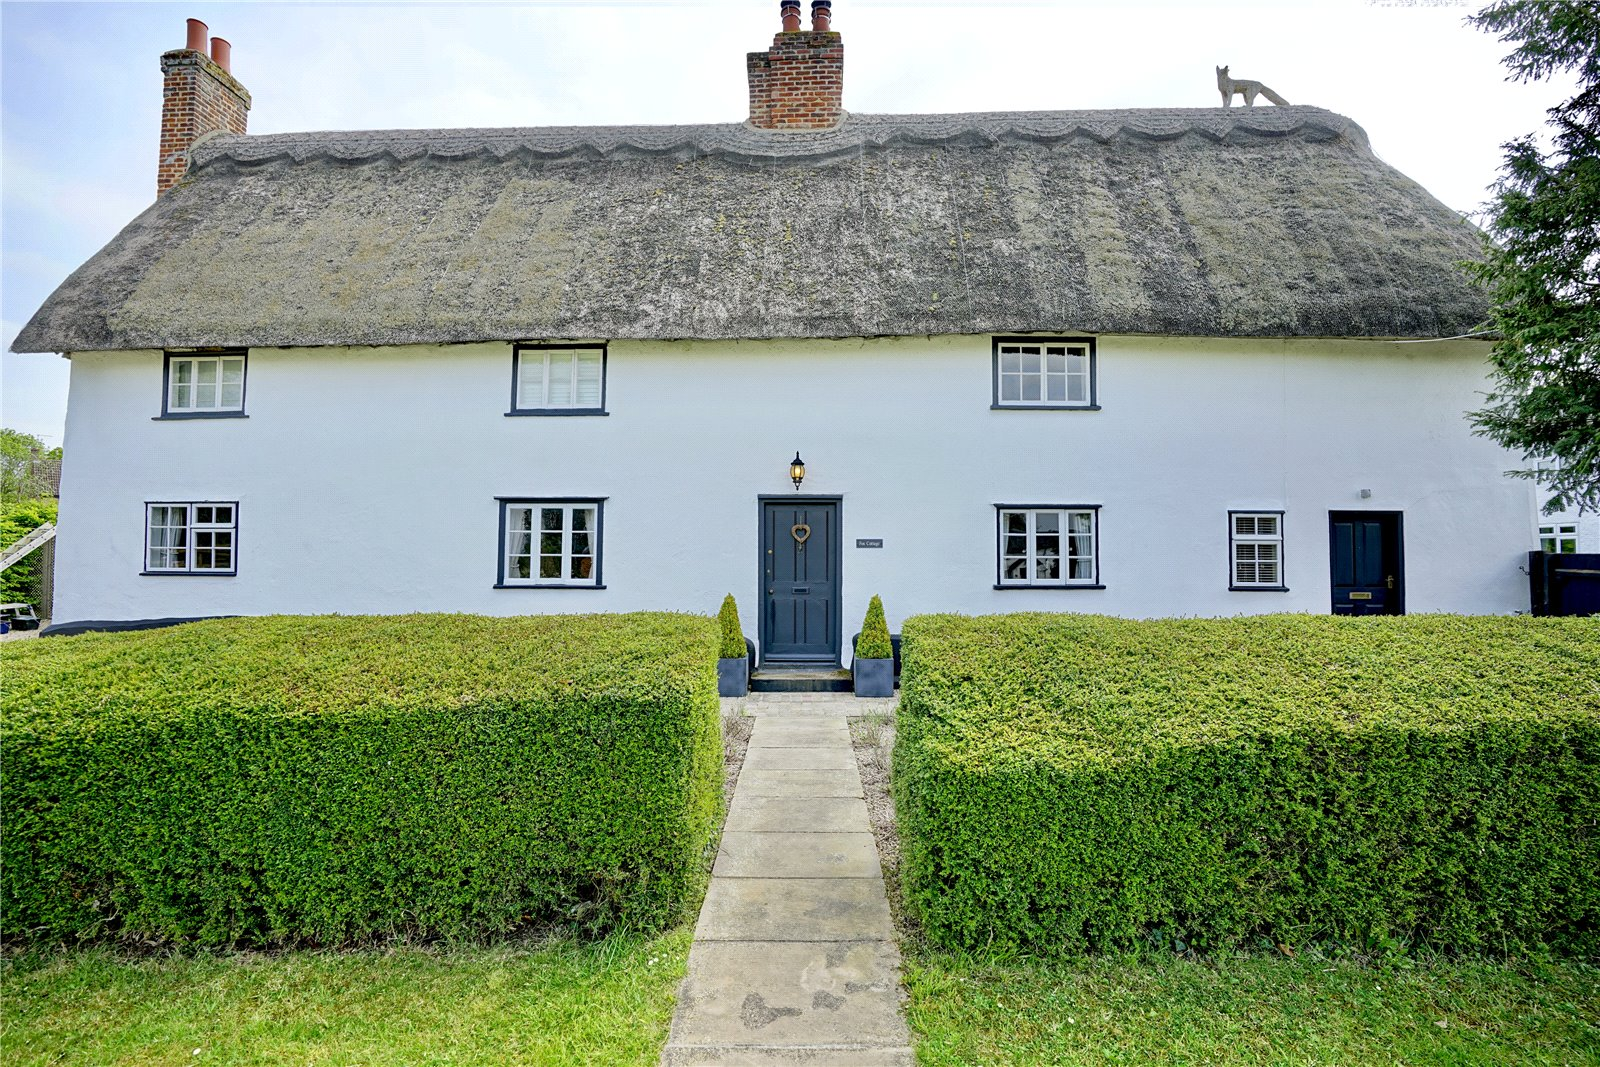 3 bed house for sale in Fox Street, Great Gransden - Property Image 1